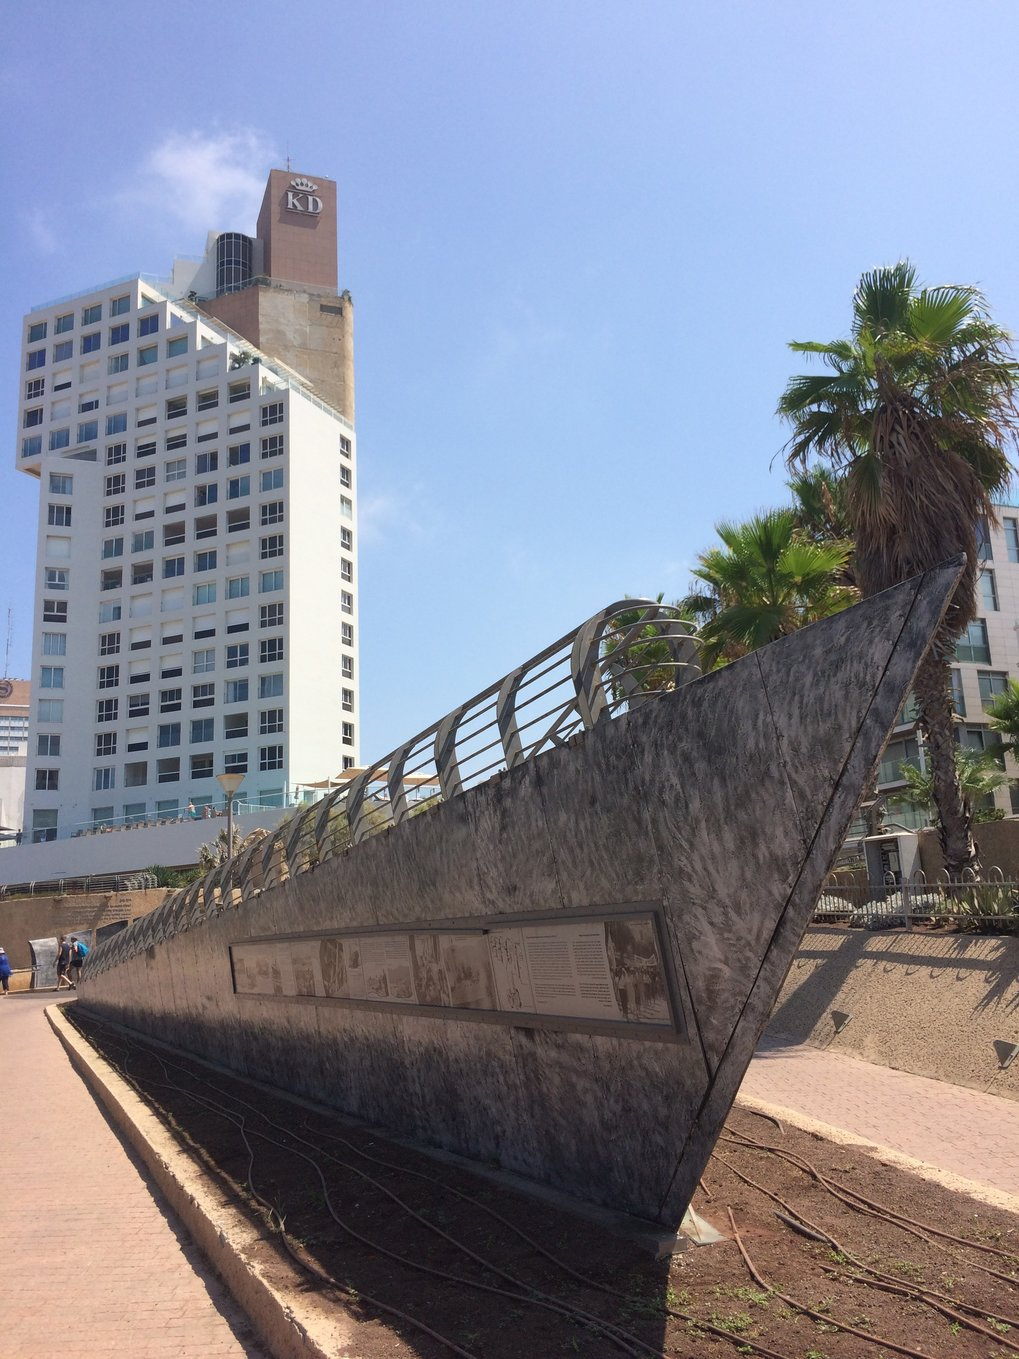 A monument in the form of a ship's hull at London Square in Tel Aviv commemorates the waves of Jewish immigrants and their helpers. The names of the ships who transported more than 100,000 illegal immigrants (Ma'apilim) from Europe to the former British mandated territory which later became the State of Israel can be seen from six metal plates. © Oliver Sukrow